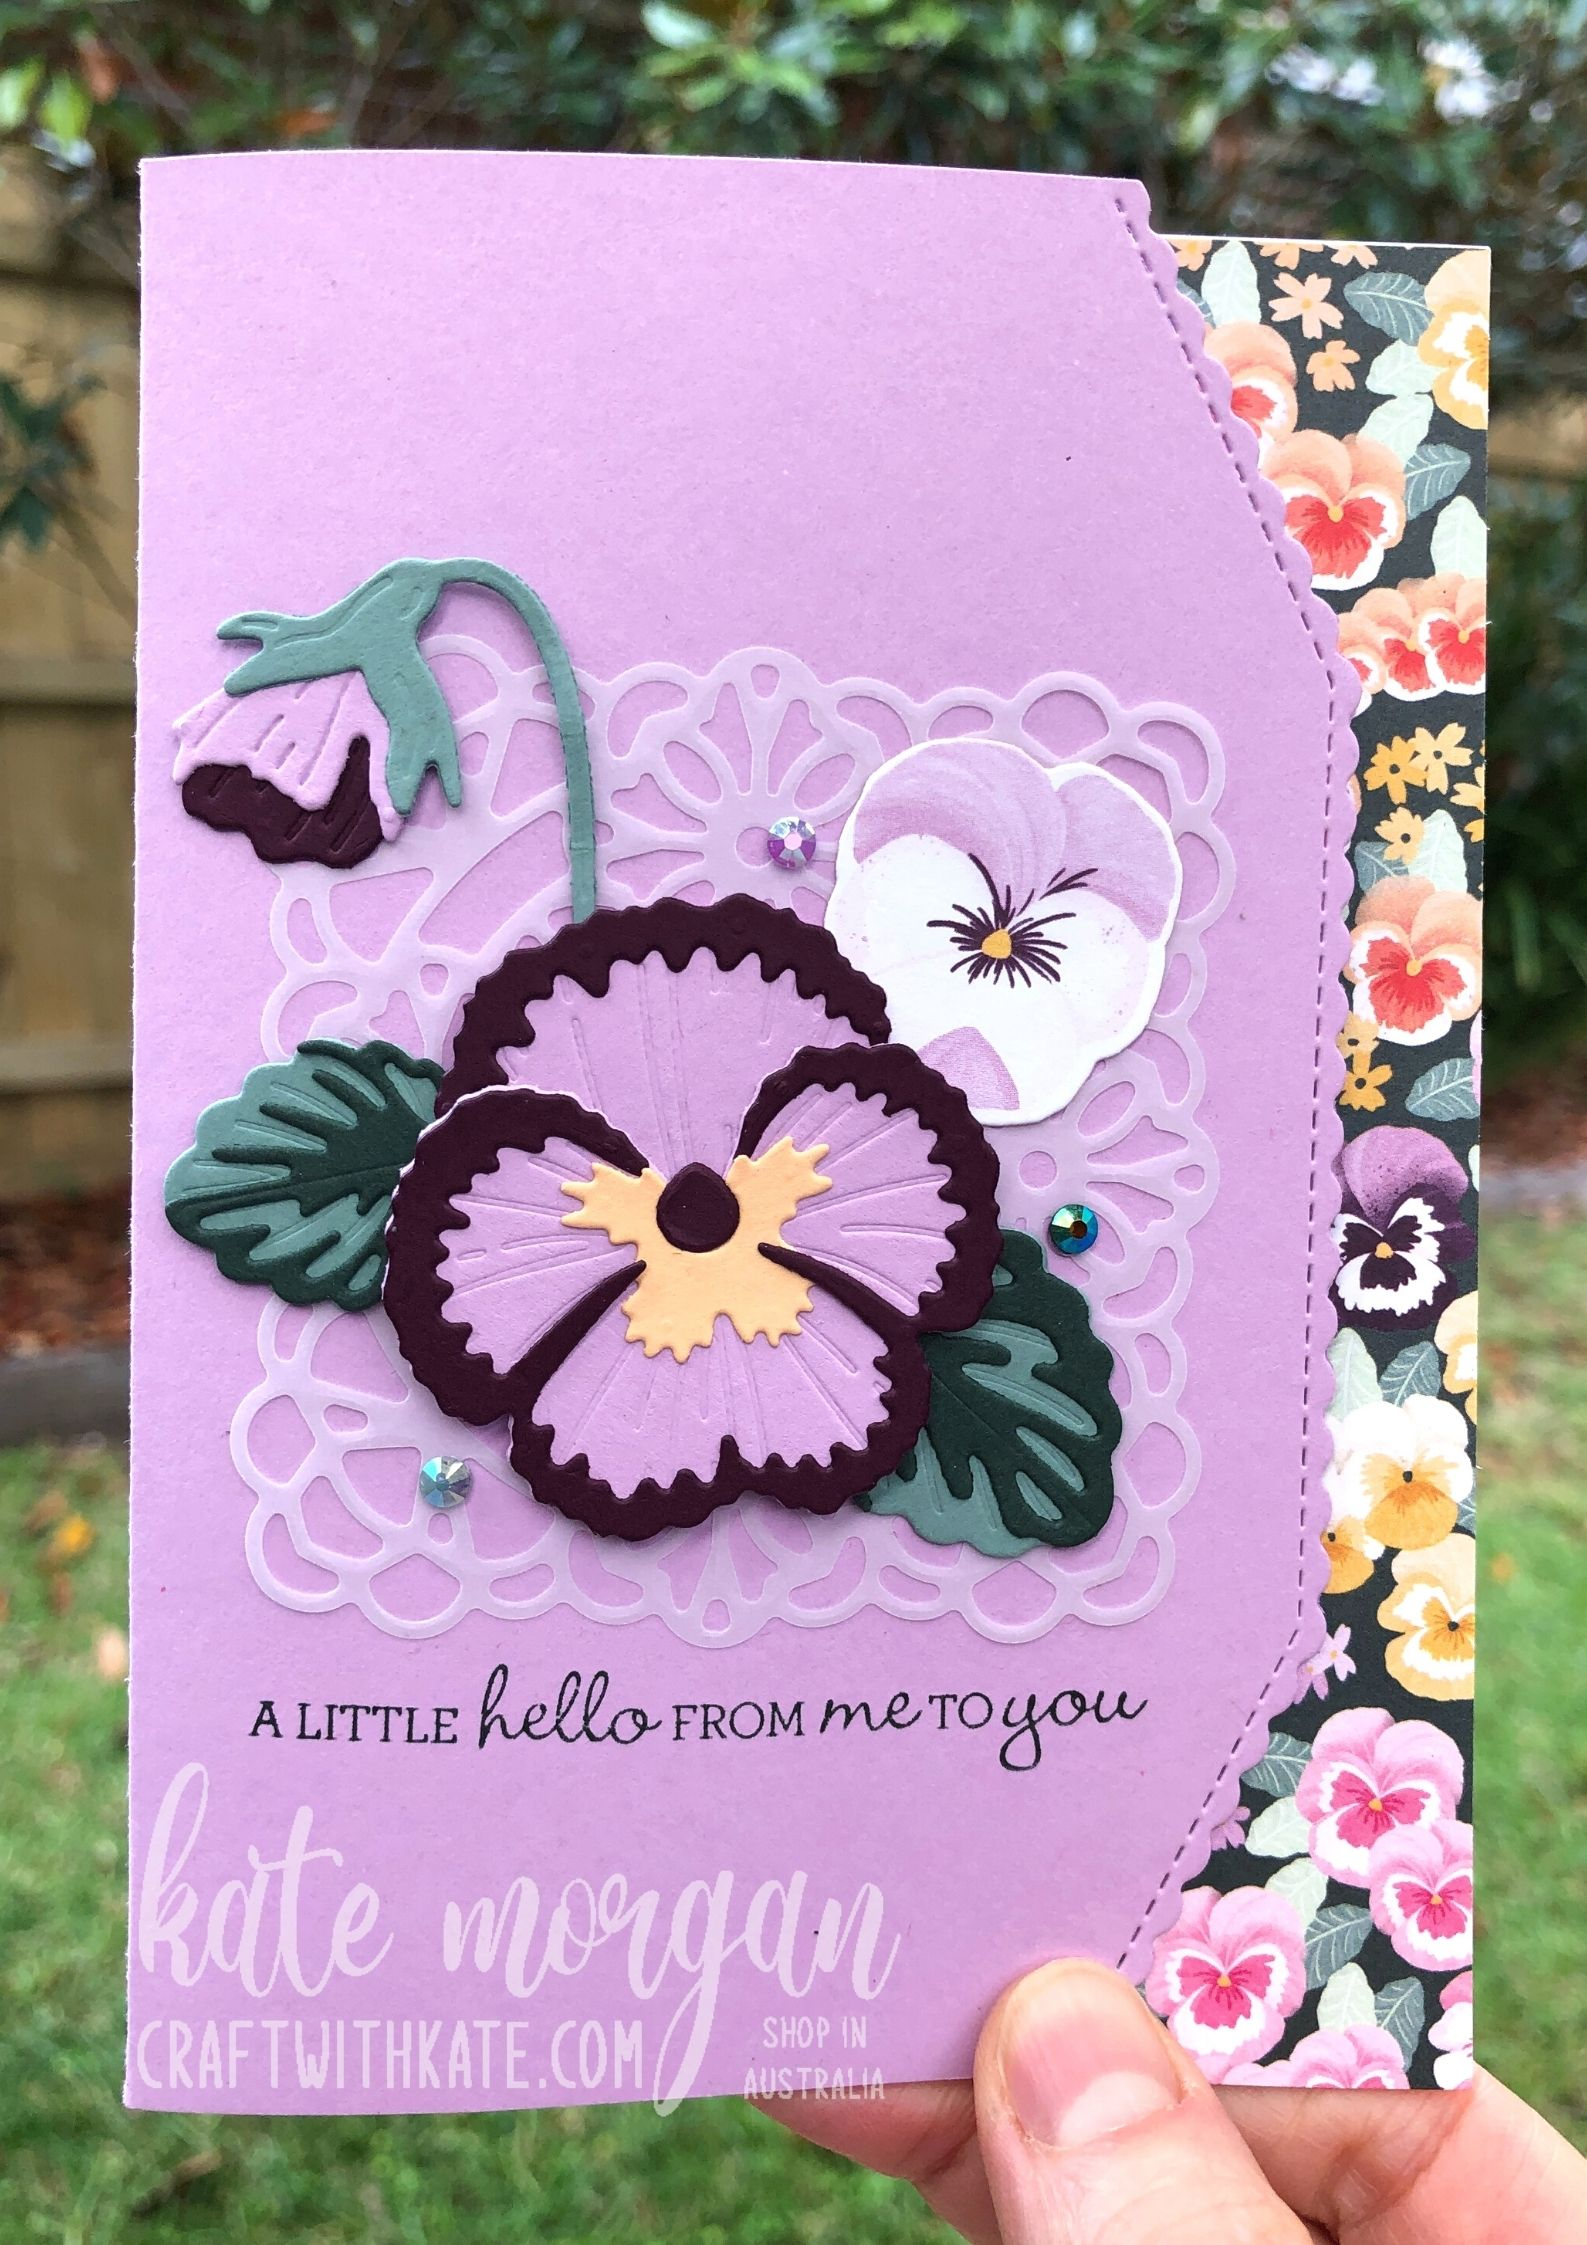 Fresh Freesia Pansy Patch & Border dies by Kate Morgan Stampin Up Australia 2021